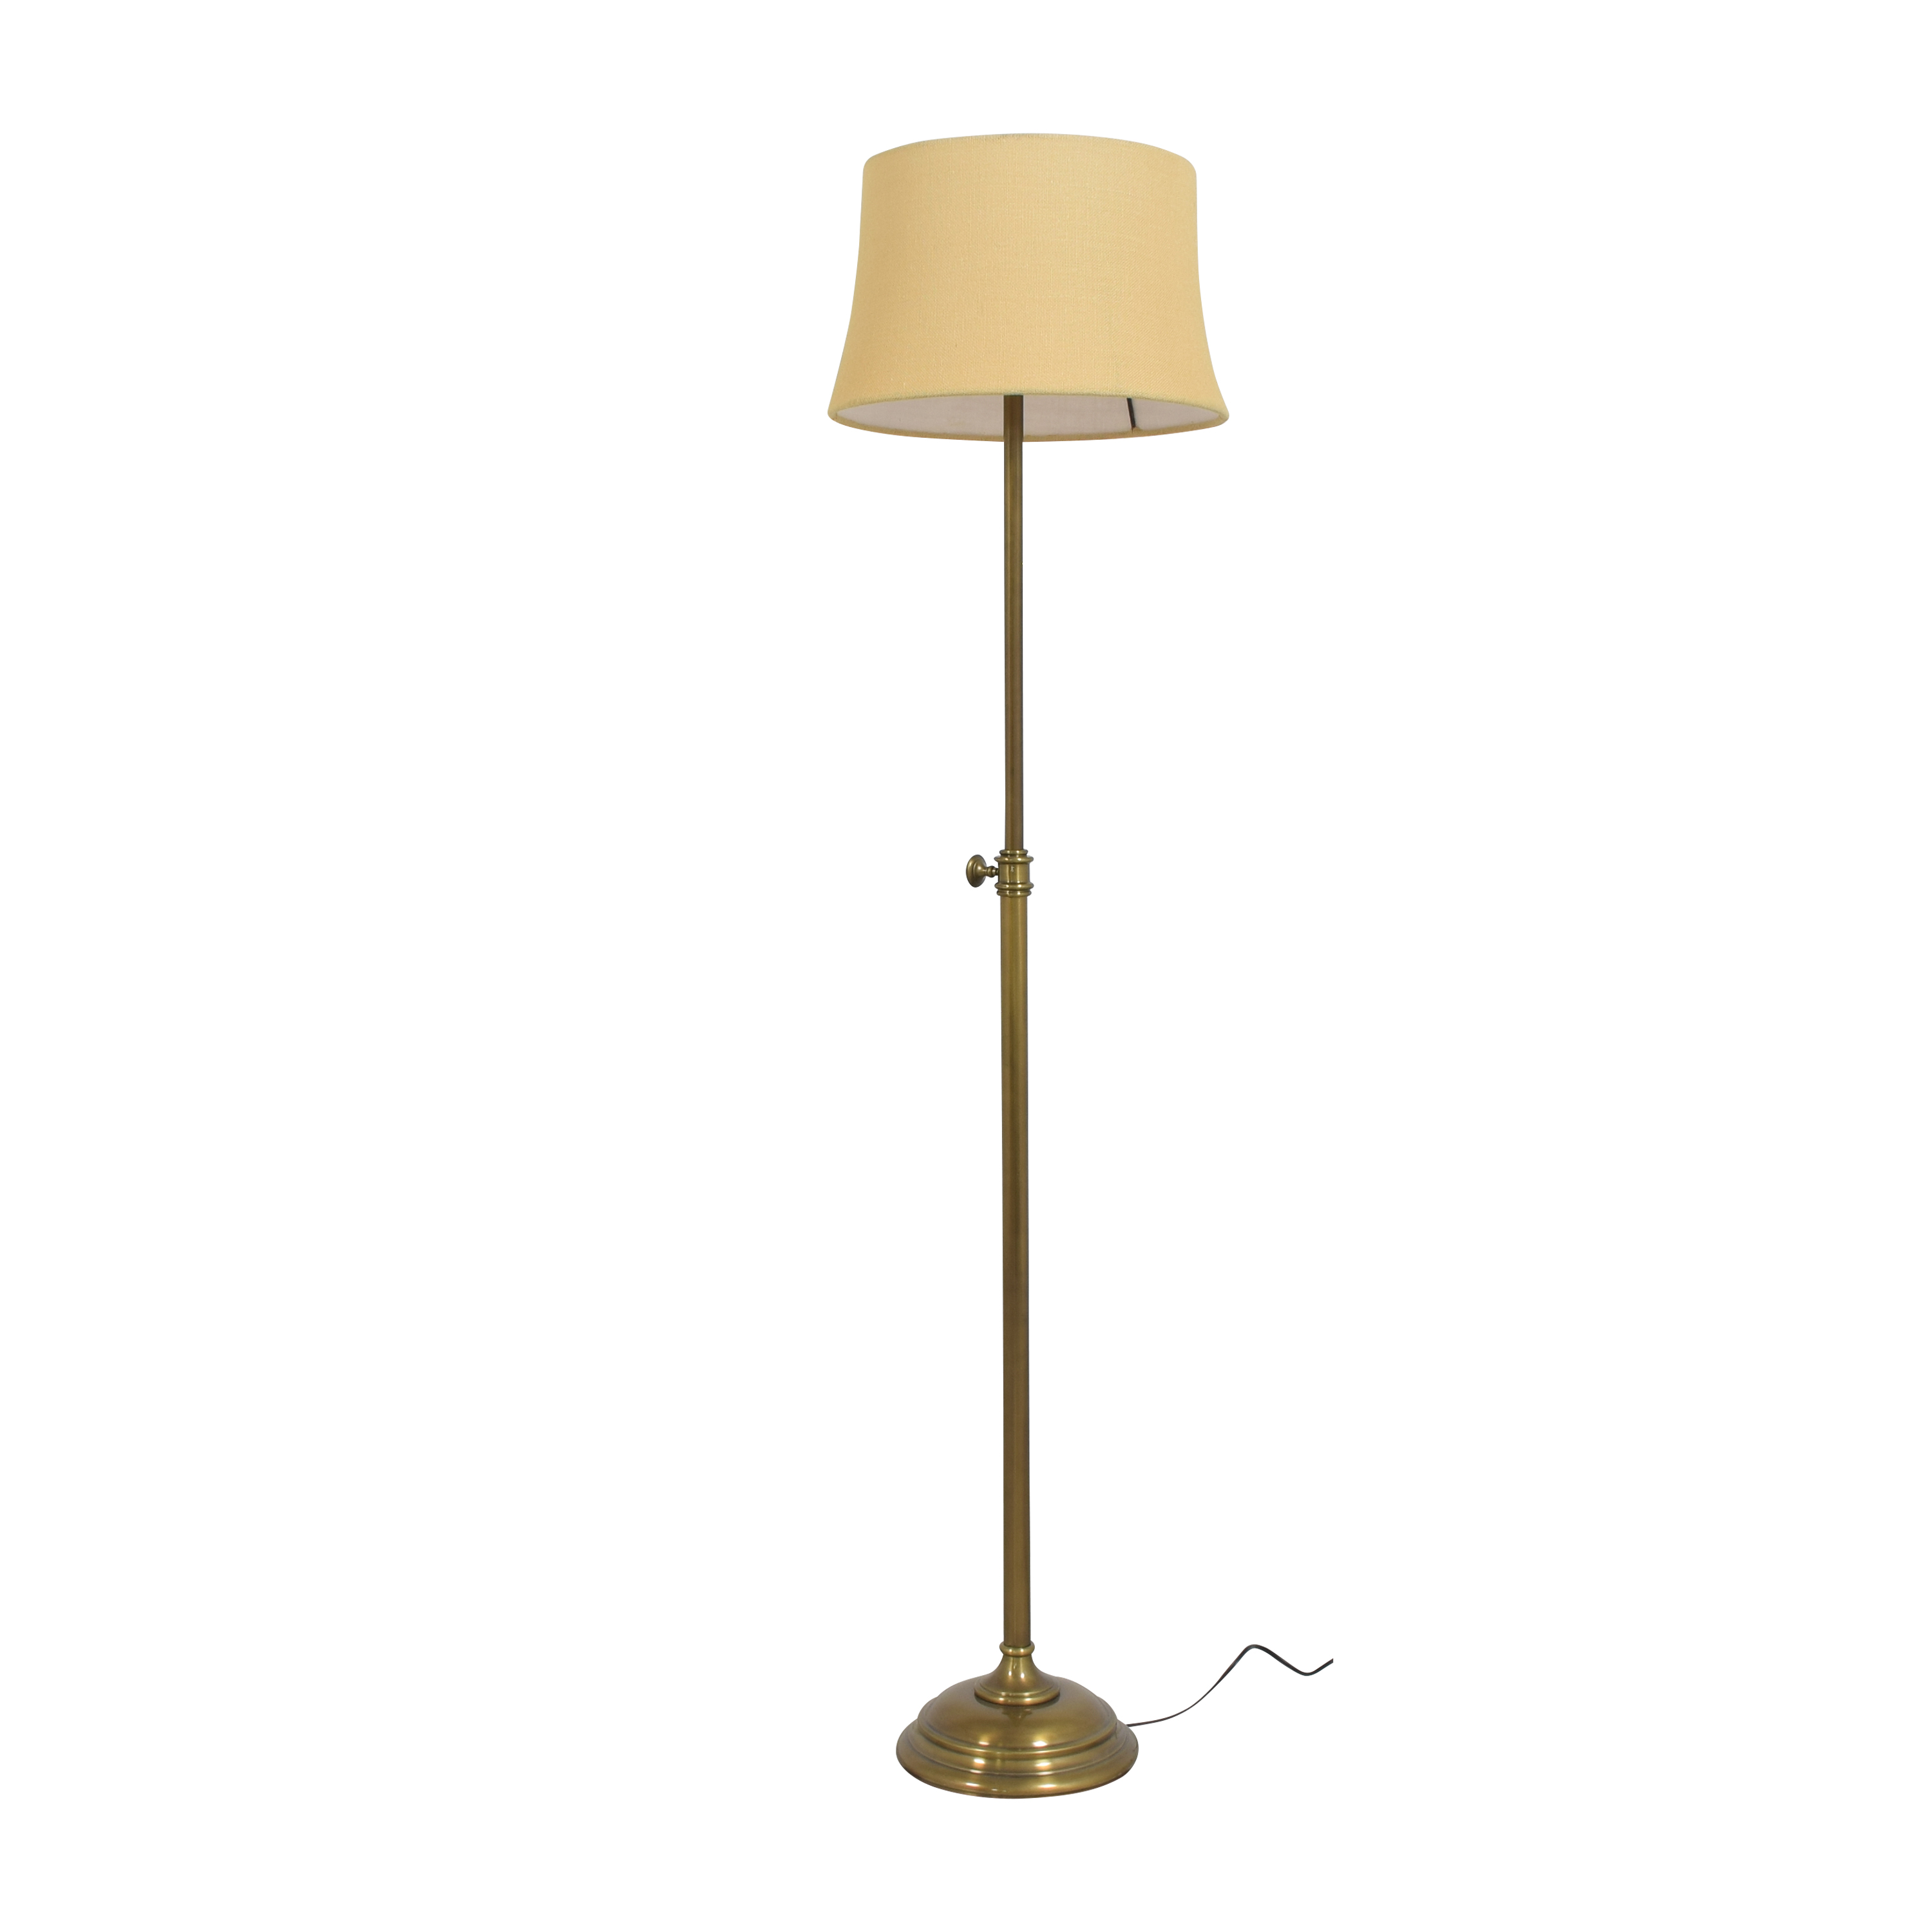 Pottery Barn Chelsea Adjustable Floor Lamp Pottery Barn